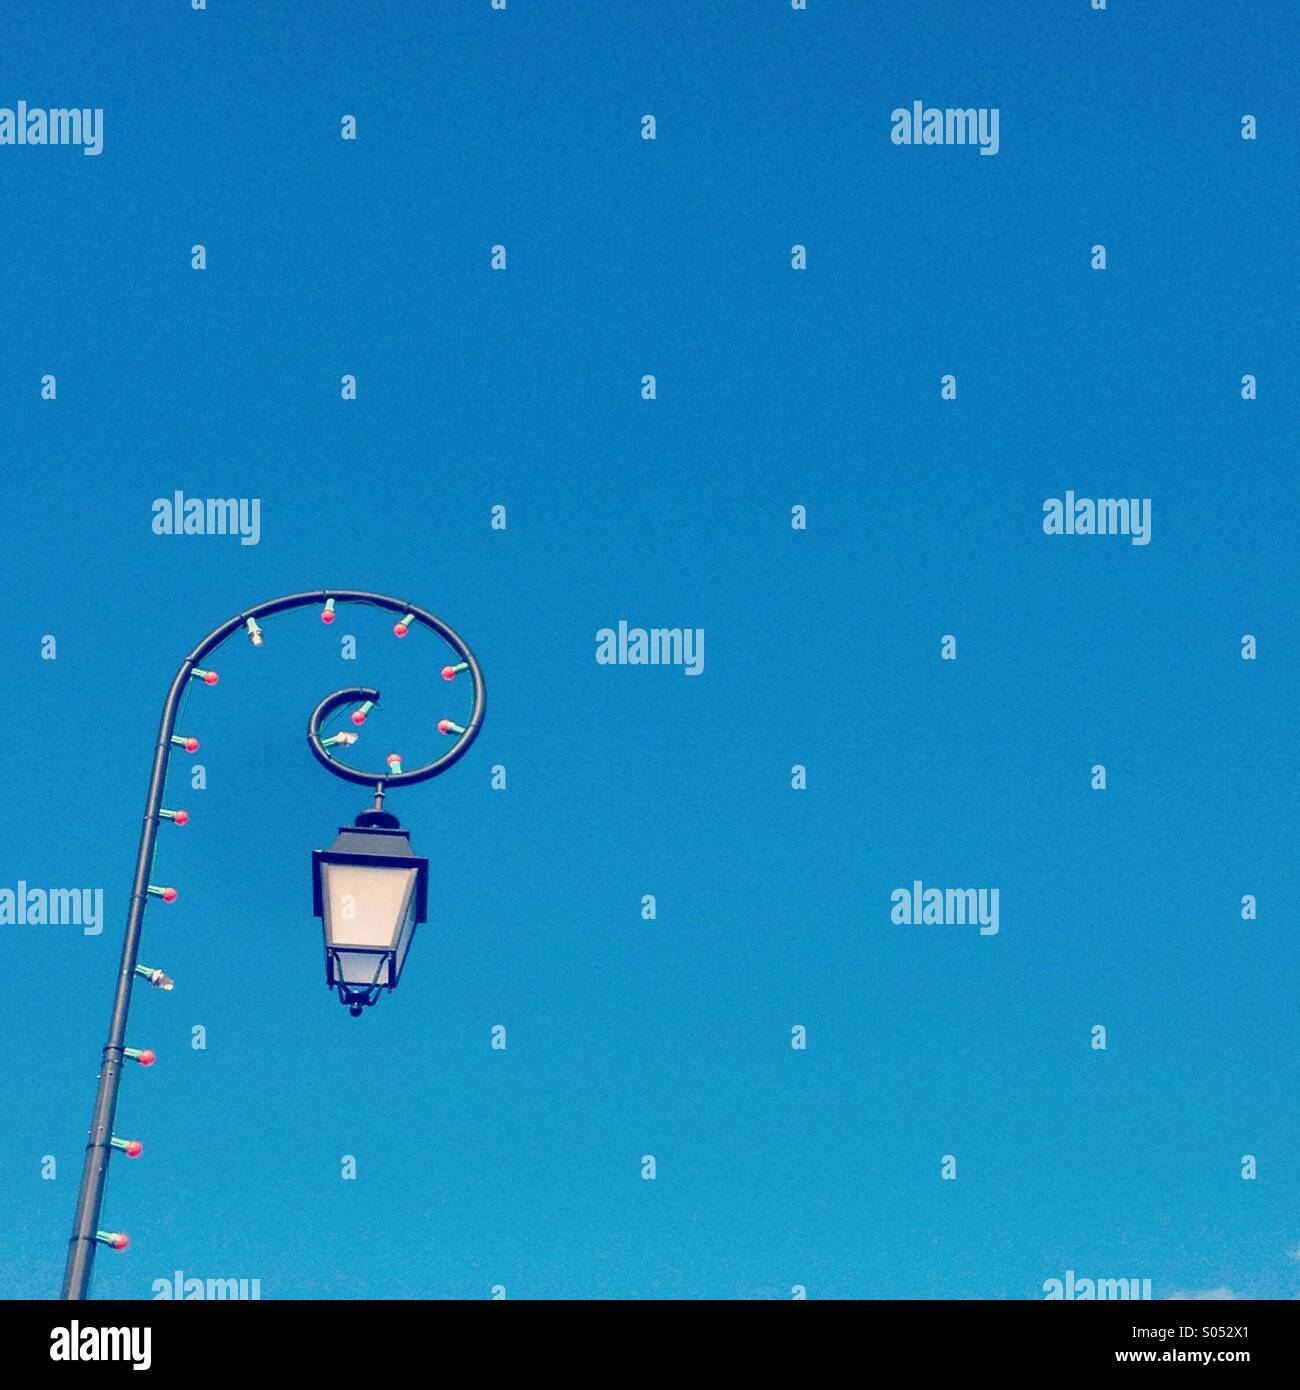 Street light against blue sky - Stock Image